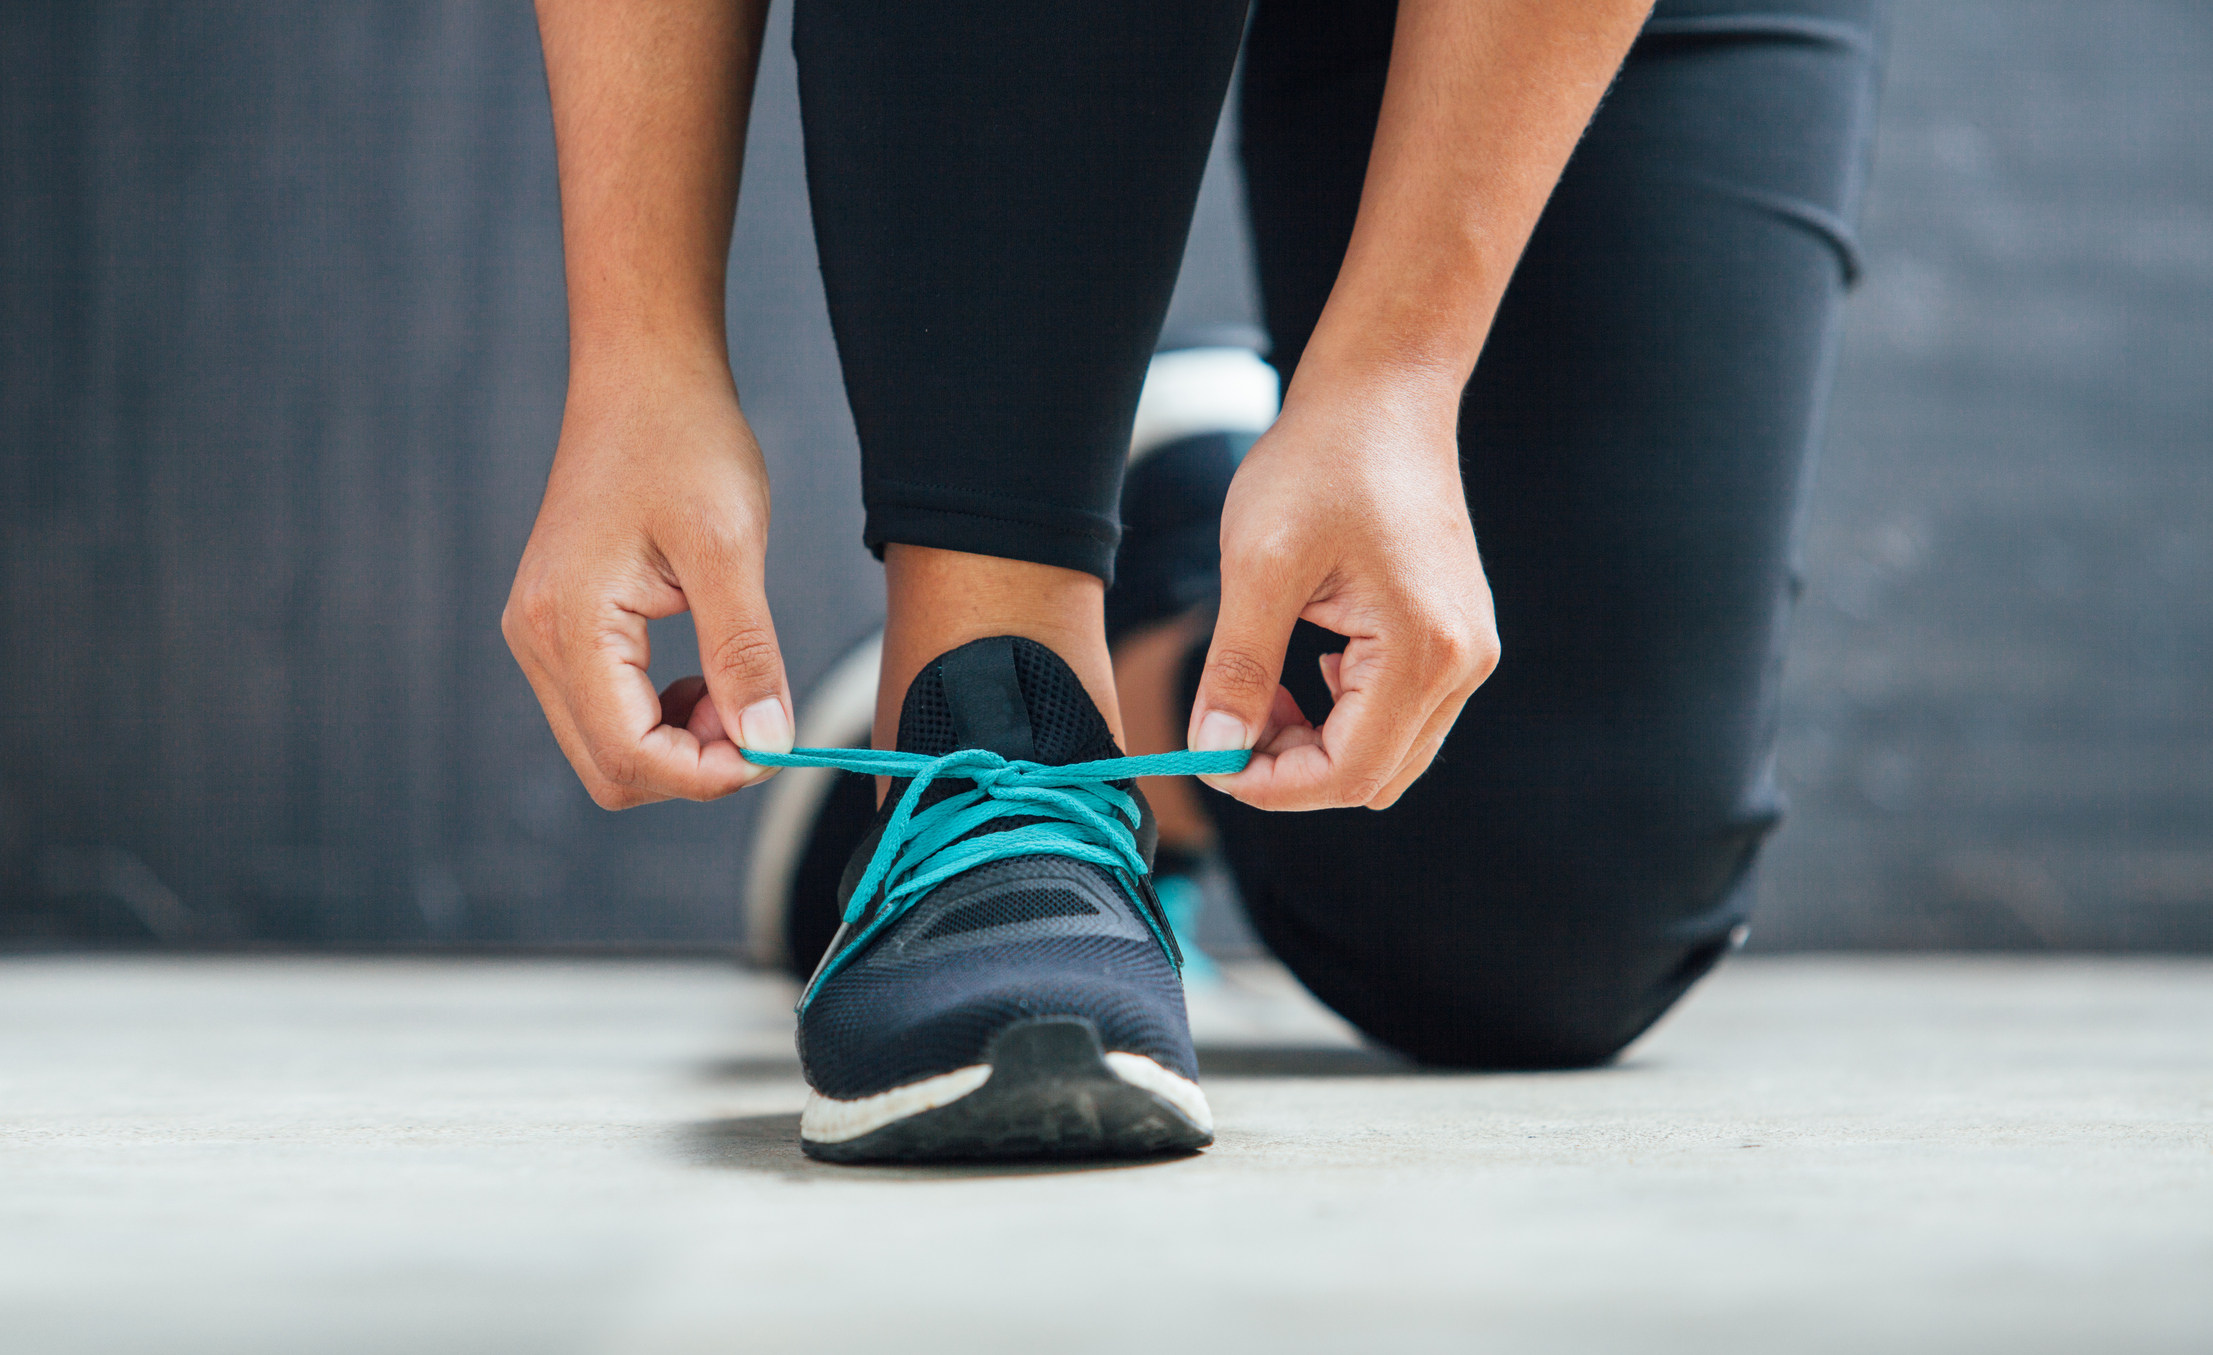 Female runner tying her shoes preparing for a run (Thinkstock/PA)